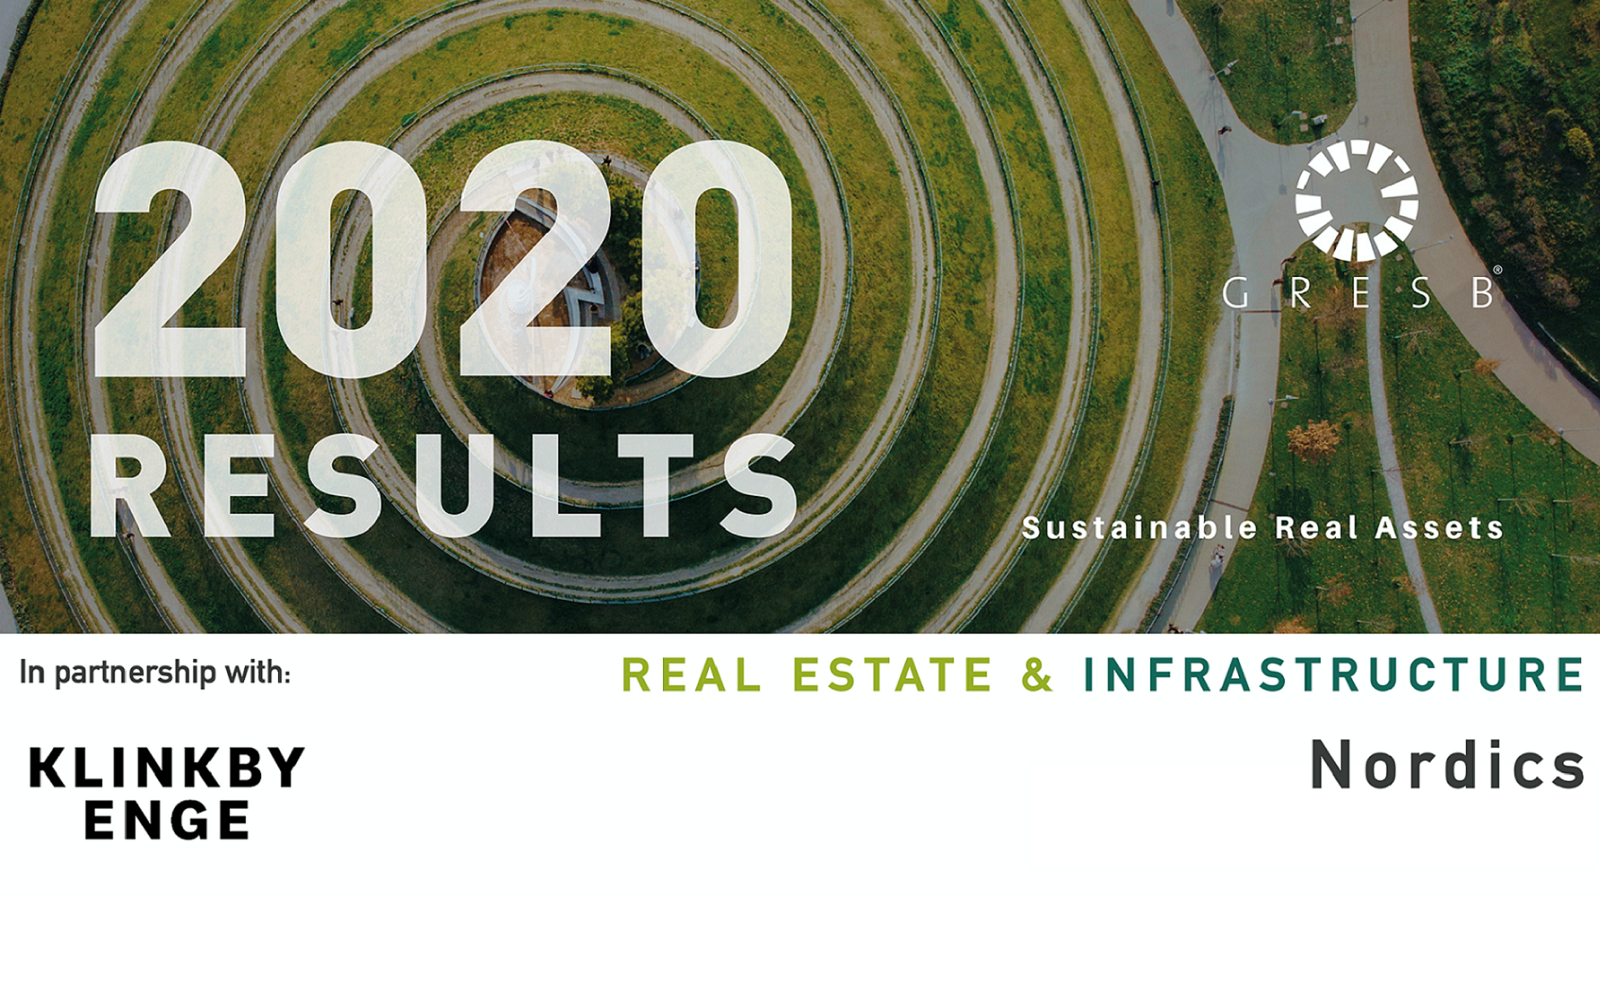 2020 GRESB Real Estate & Infrastructure Results – Nordics